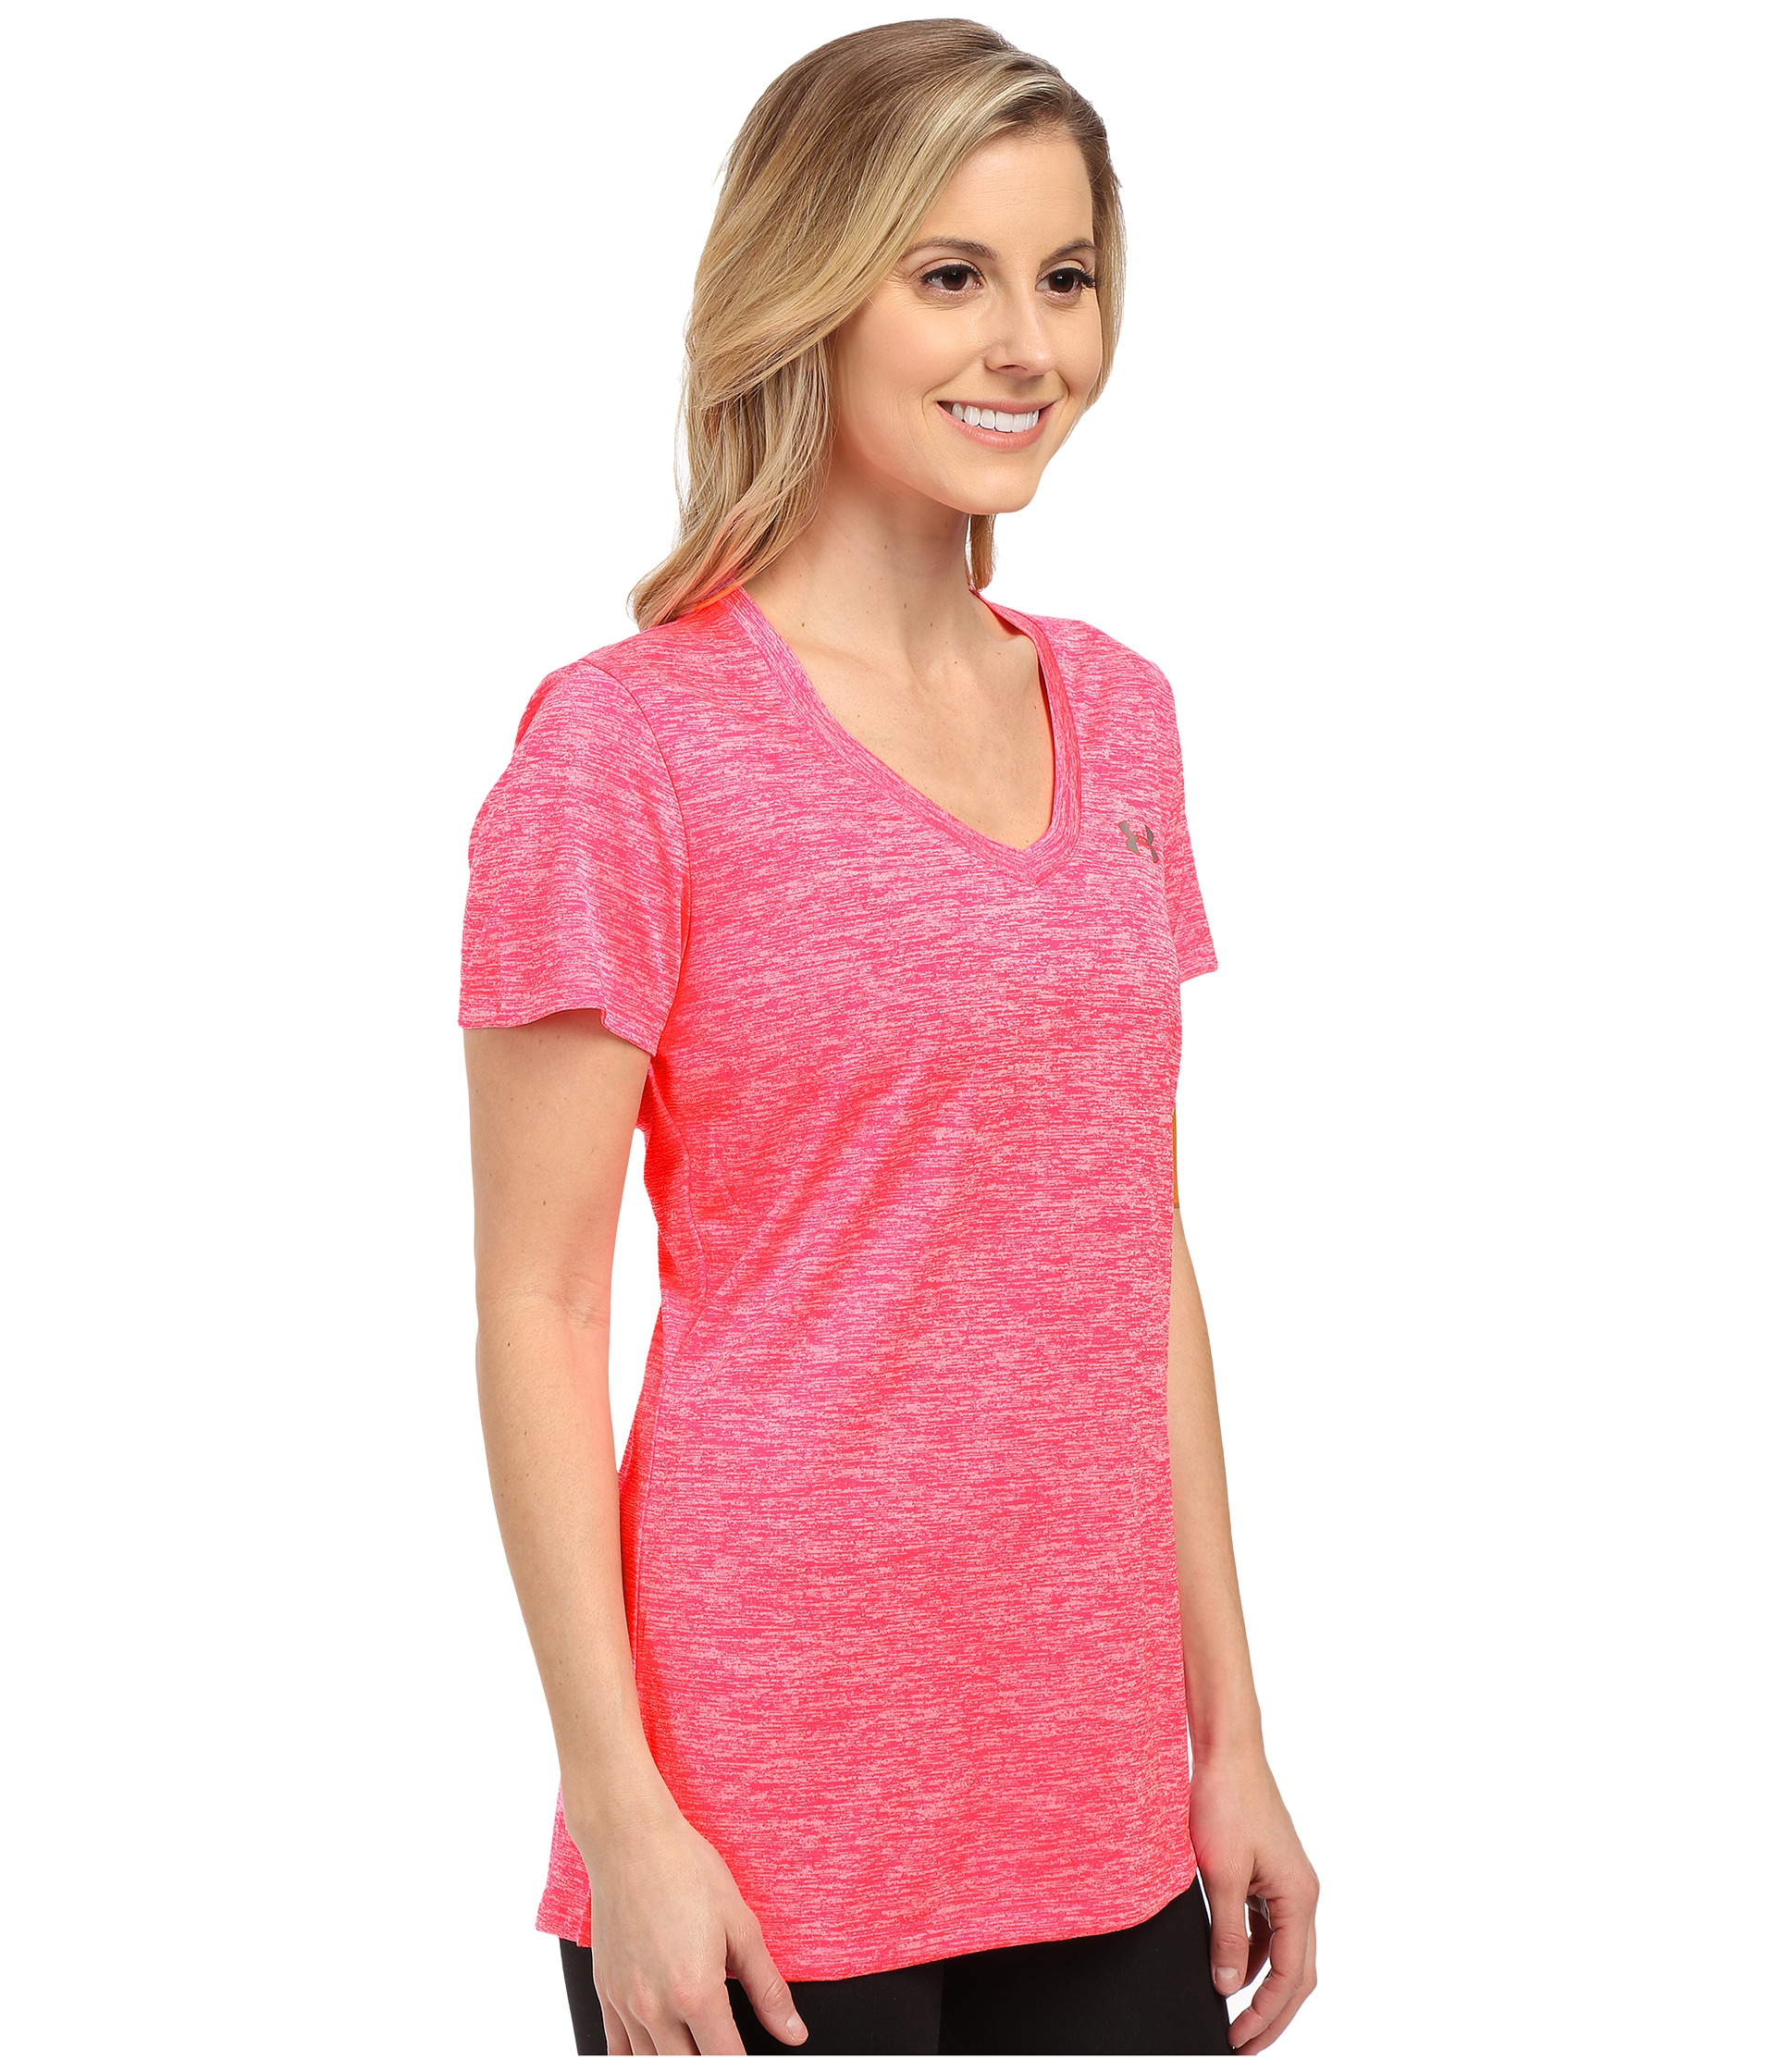 Lyst - Under Armour Ua Tech™ S s - Twist in Red 04d7e6912fd